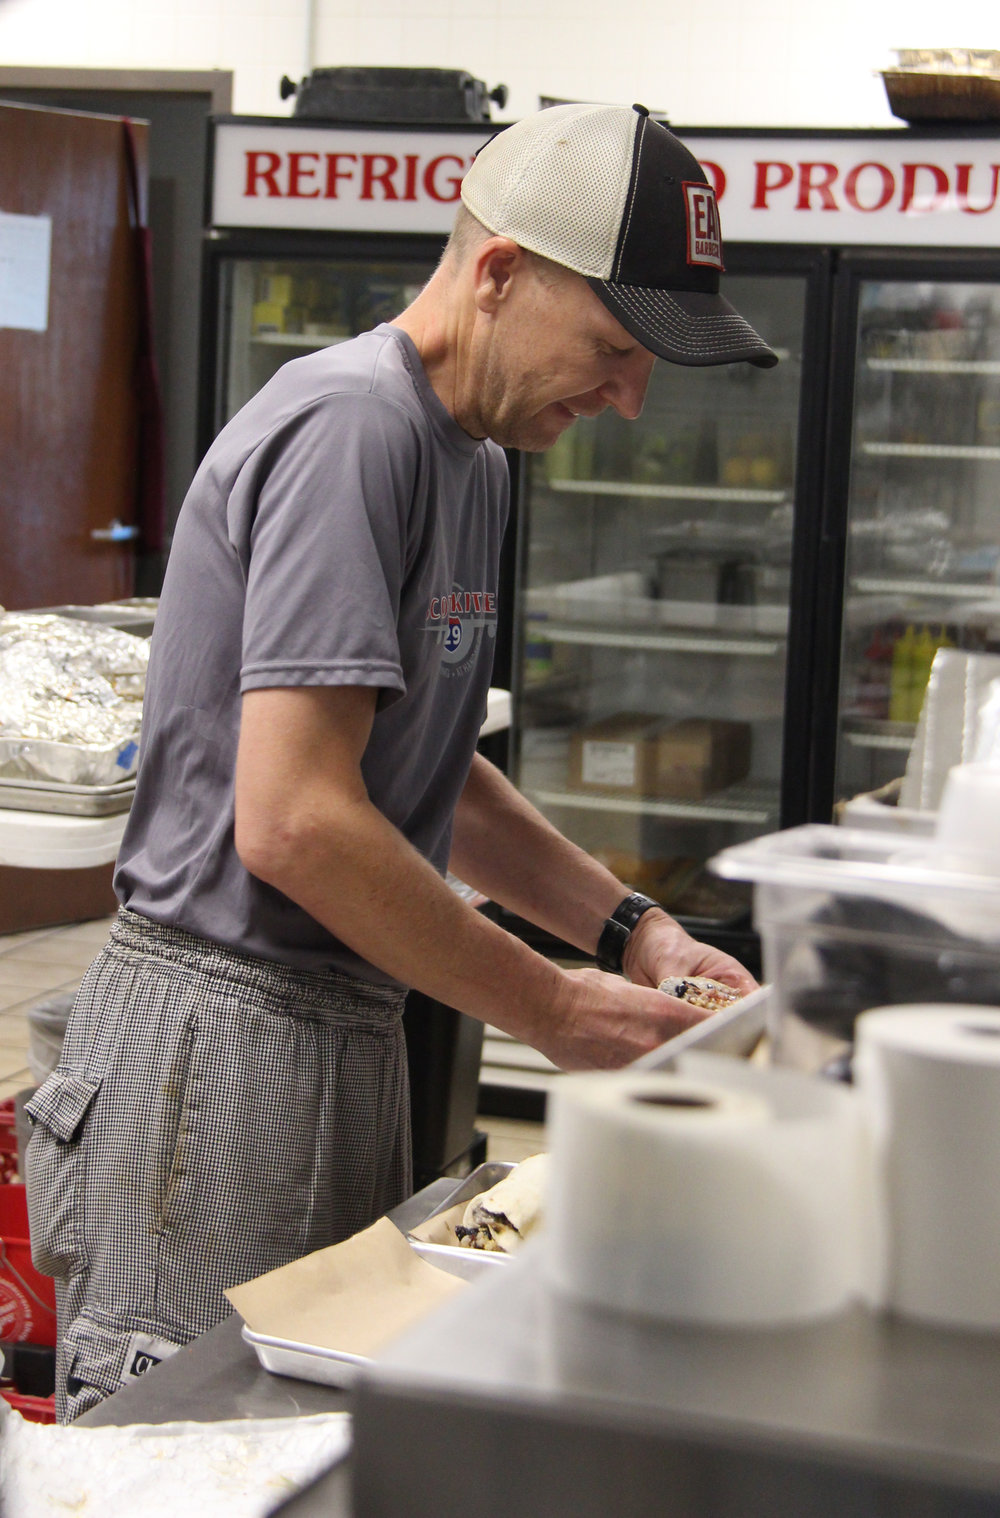 Contributed photo Scott Umscheid prepares a burrito Tuesday, Aug. 1 at his newly opened restaurant Scott's Kitchen and Catering at Hangar 29, located on NW Ambassador Drive in central Platte County.